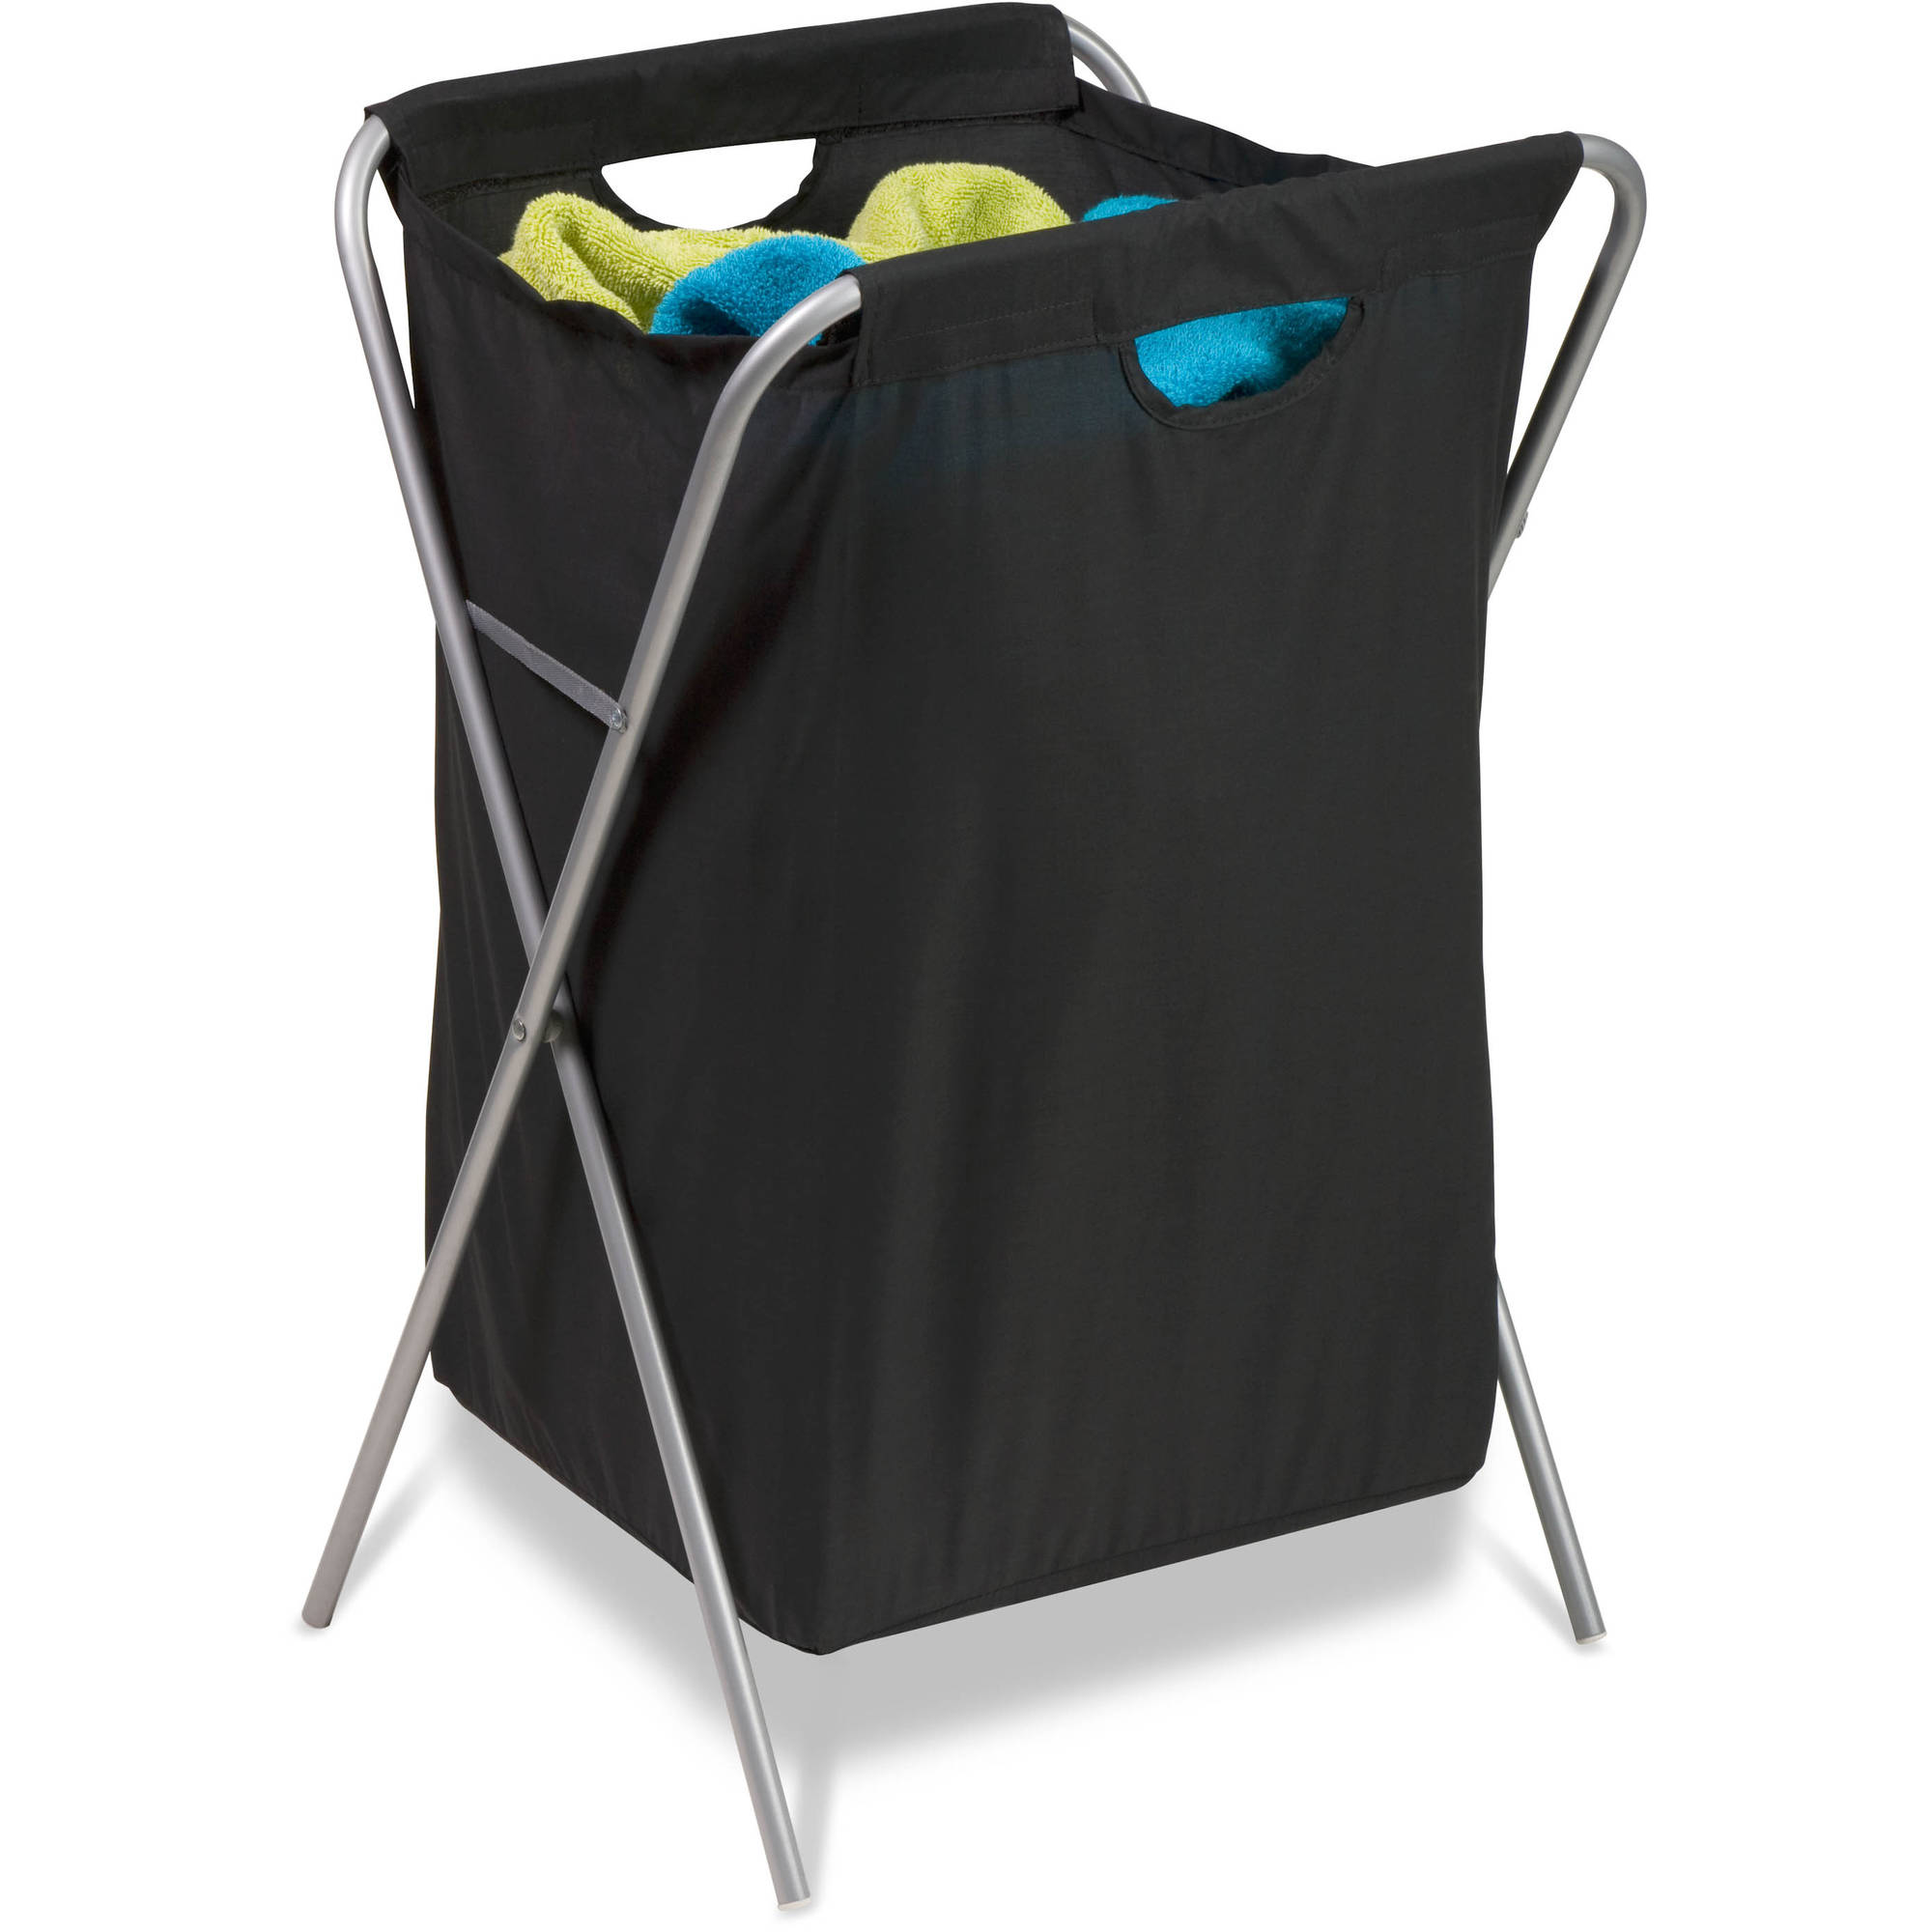 Honey Can Do Folding Nylon Hamper with Steel Frame and Washable Bag by HONEY-CAN-DO INTERNATIONAL LLC